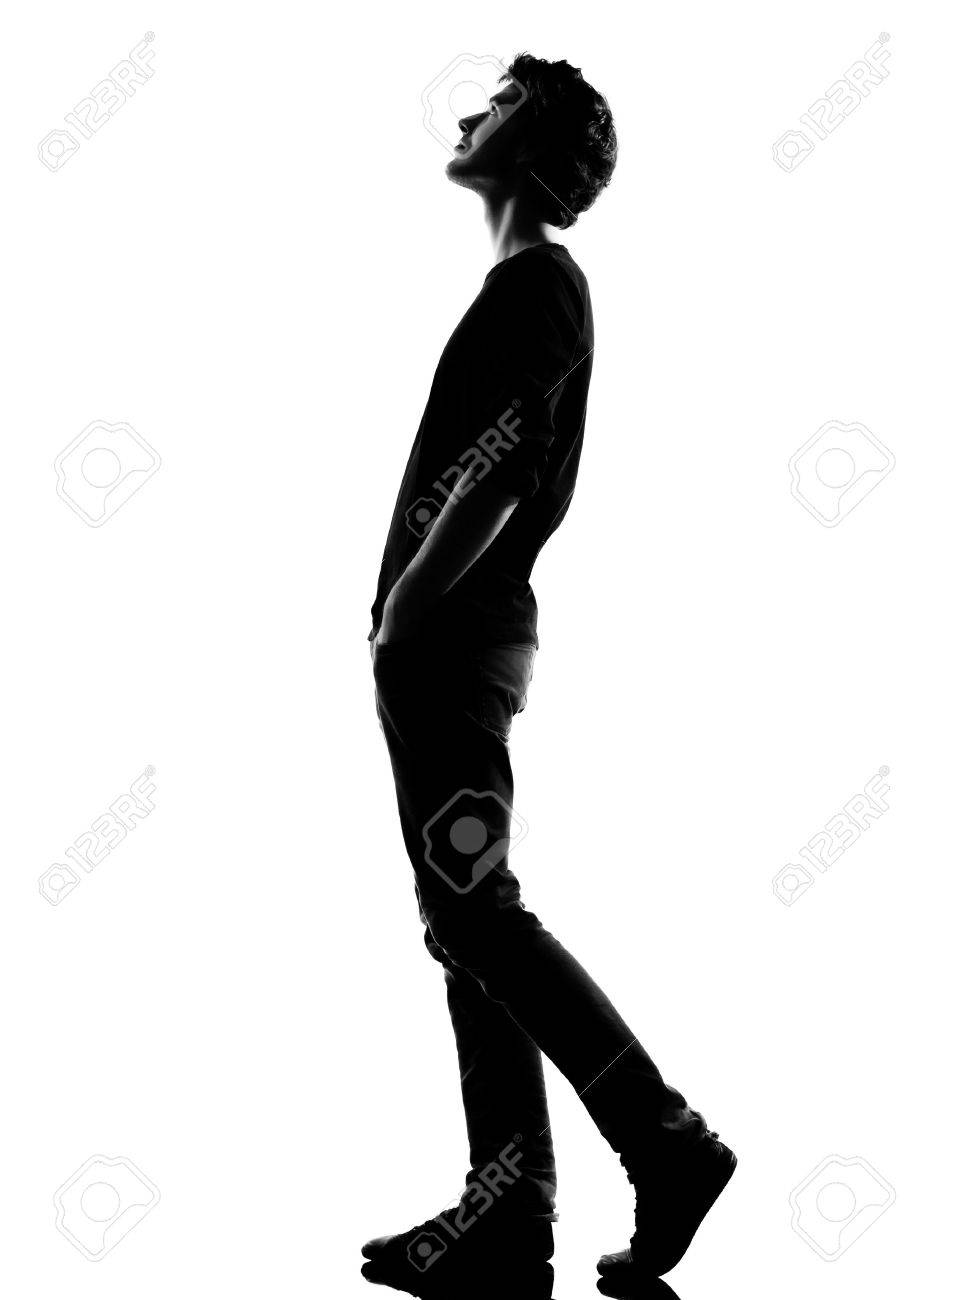 971x1300 One Caucasian Young Teenager Silhouette Boy Or Girl Full Length